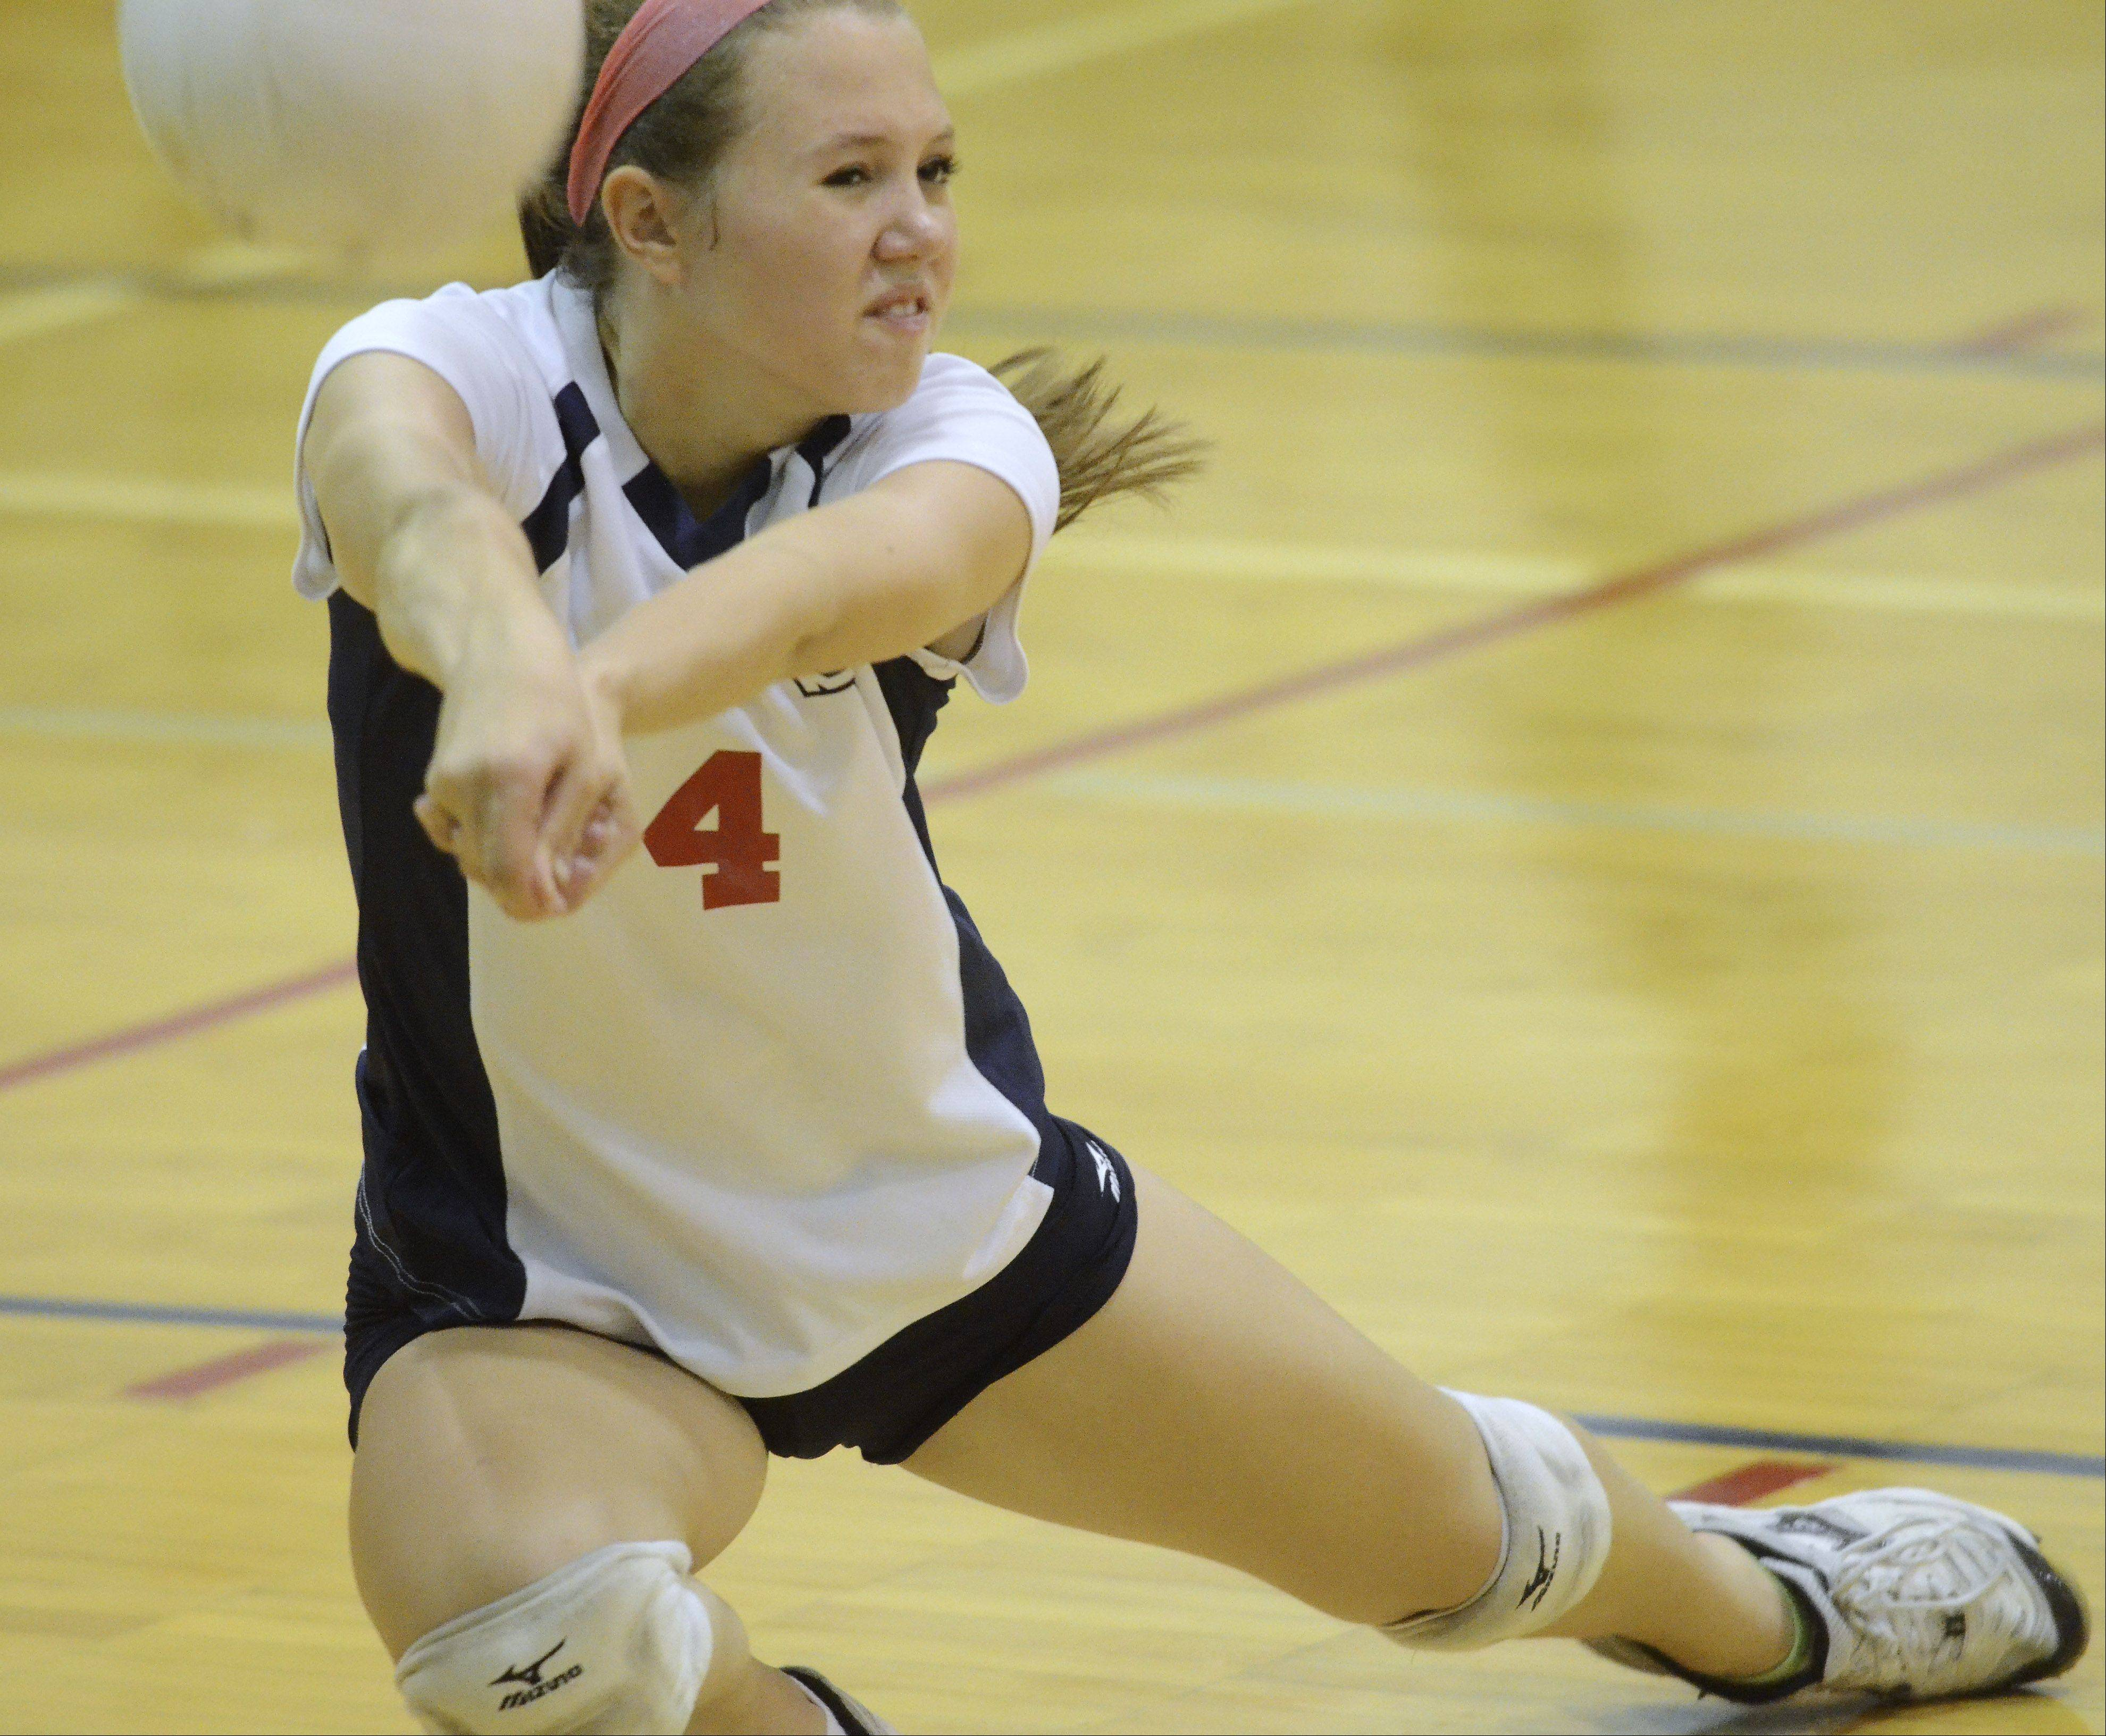 St. Viator's Caroline Young tries to keep the ball in play during Wednesday's volleyball match against Resurrection.